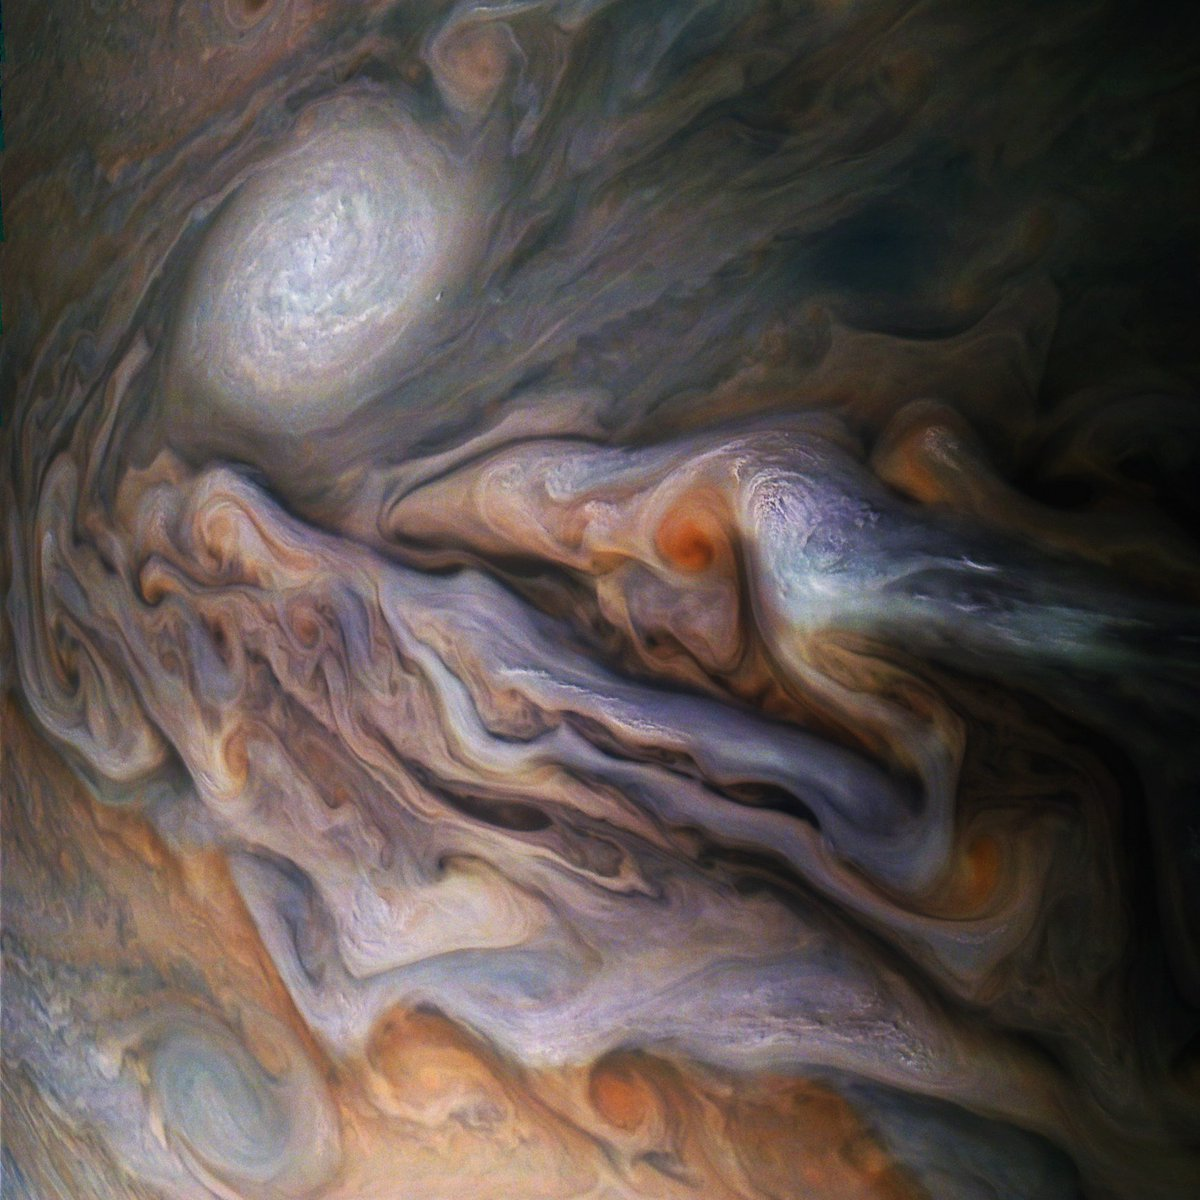 Sitting 4,400 miles above Jupiter, Nasa's Juno spacecraft took this stunning image of a large anticyclone known as a white oval. See those slightly raised white dots located next to the red storm at right center? They're high-altitude clouds https://t.co/xJn4qSAy93